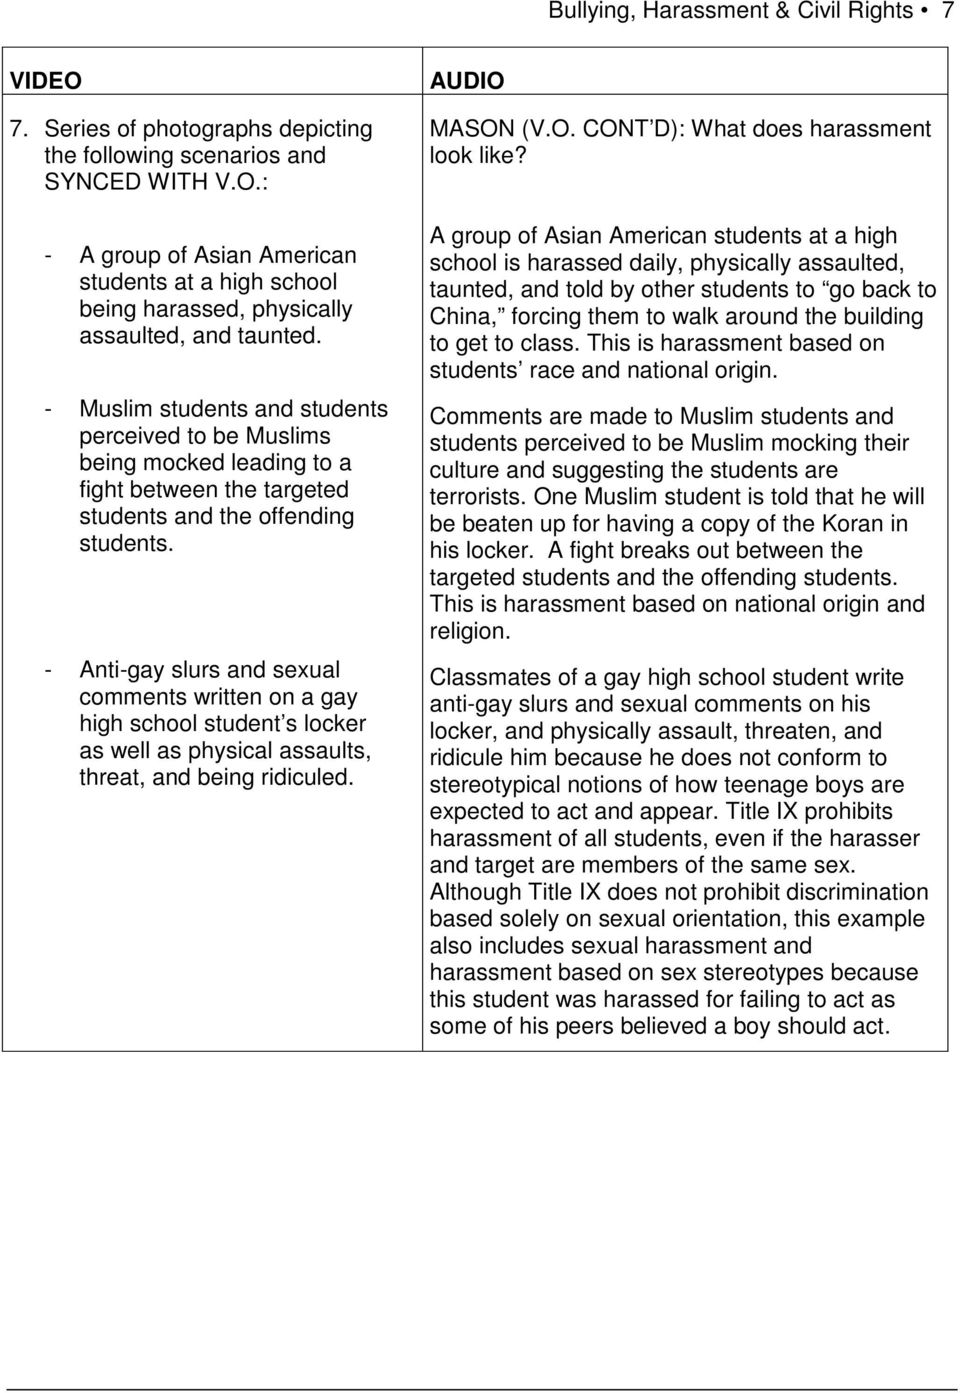 - Muslim students and students perceived to be Muslims being mocked leading to a fight between the targeted students and the offending students.